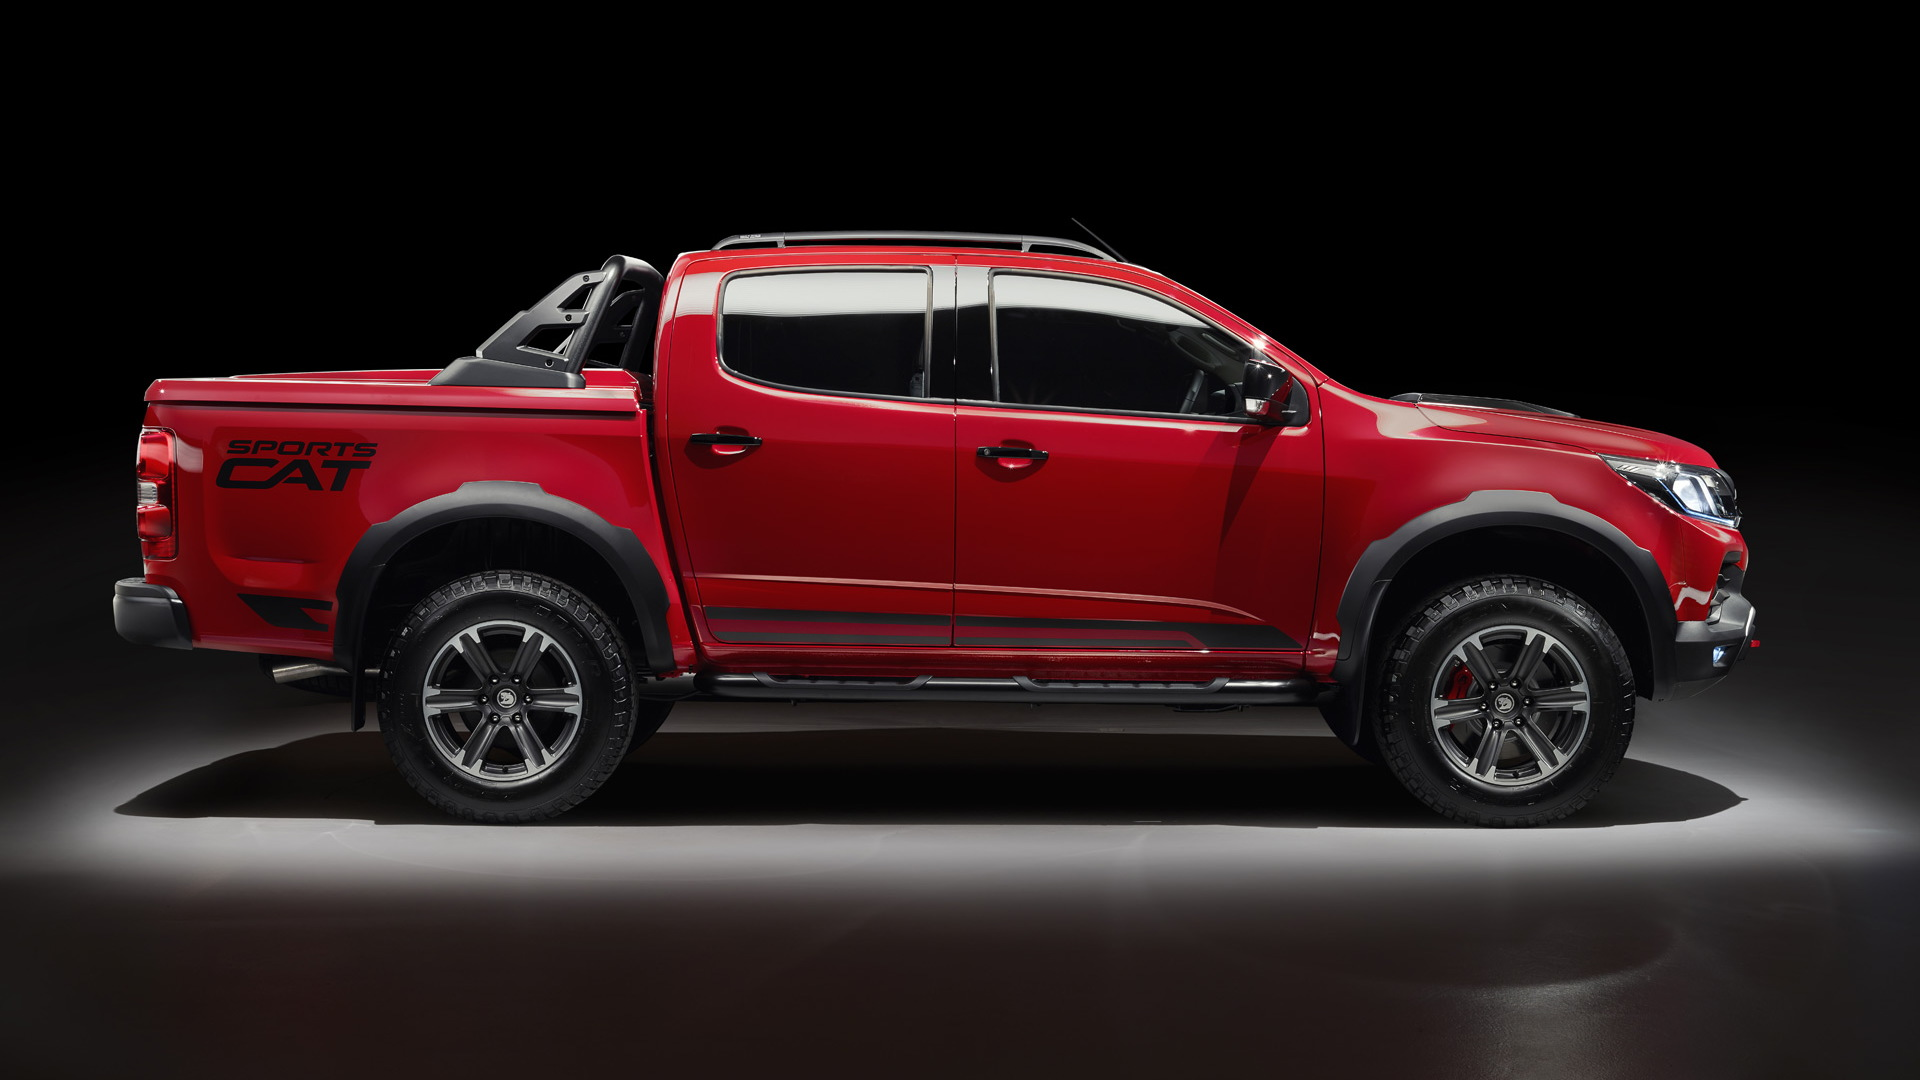 Hsv Studying Chevy Colorado Based Ranger Raptor Rival